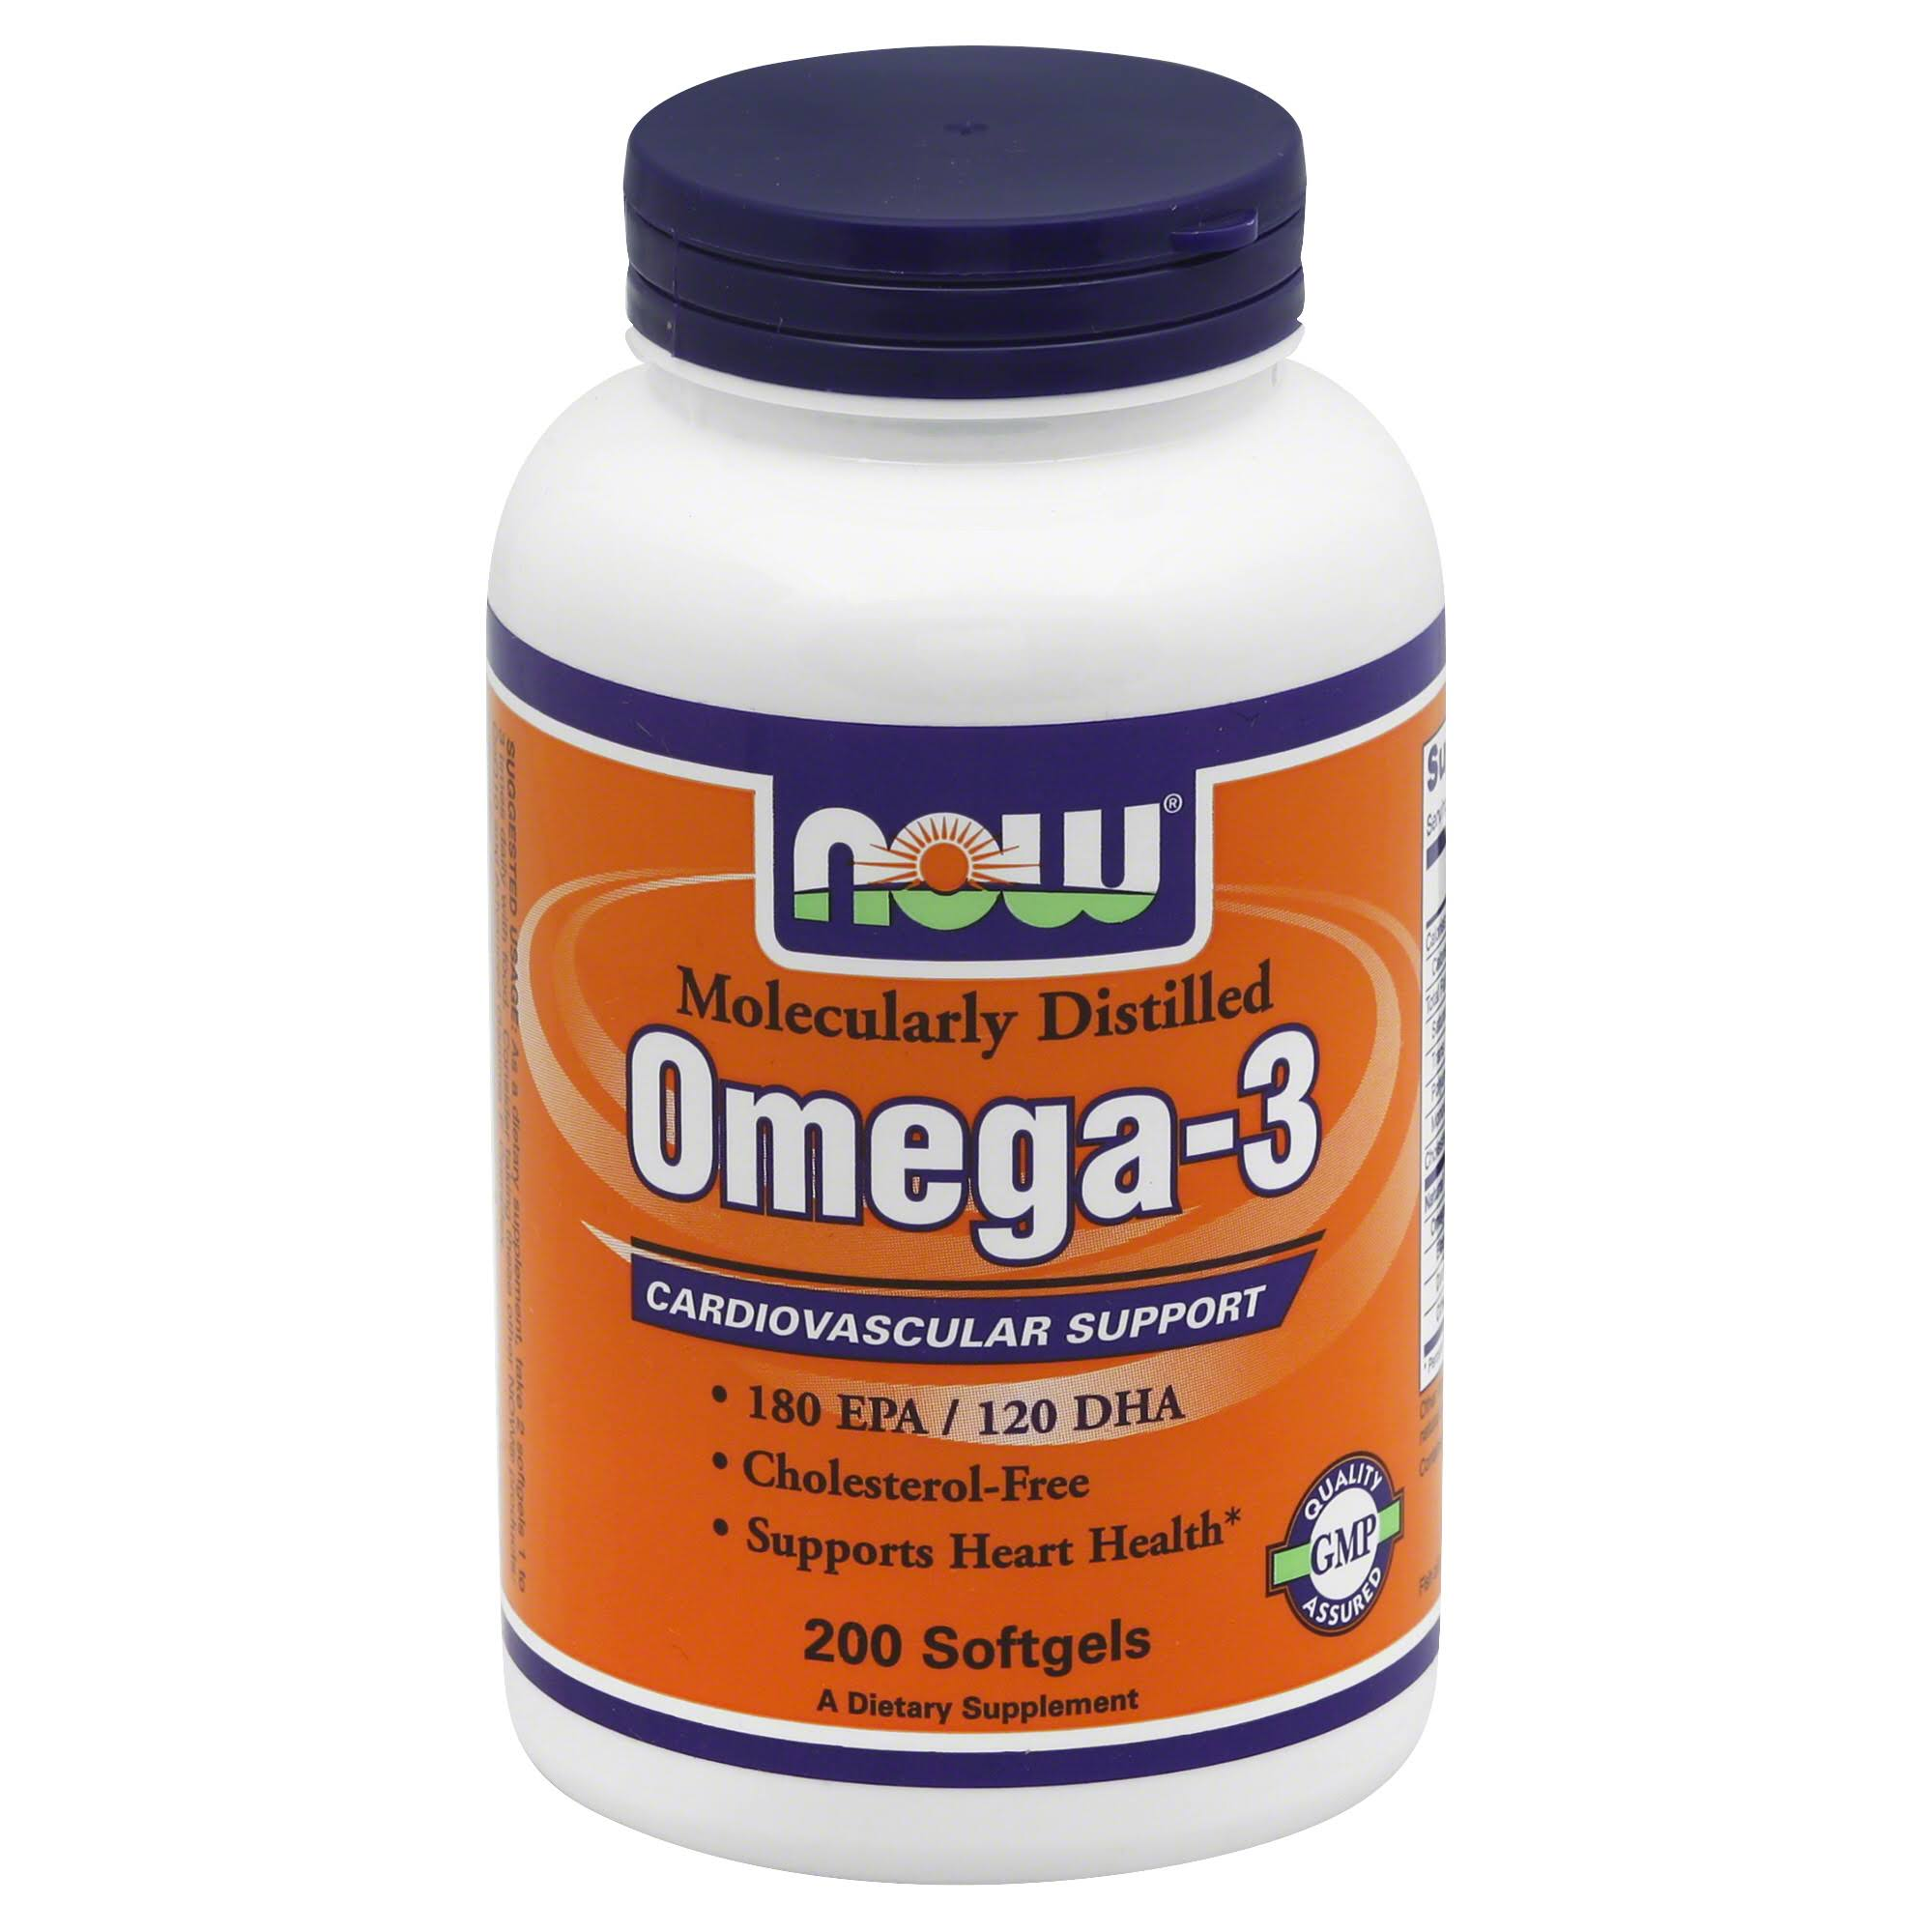 Omega 3 Cardiovascular Support - 200 Softgels